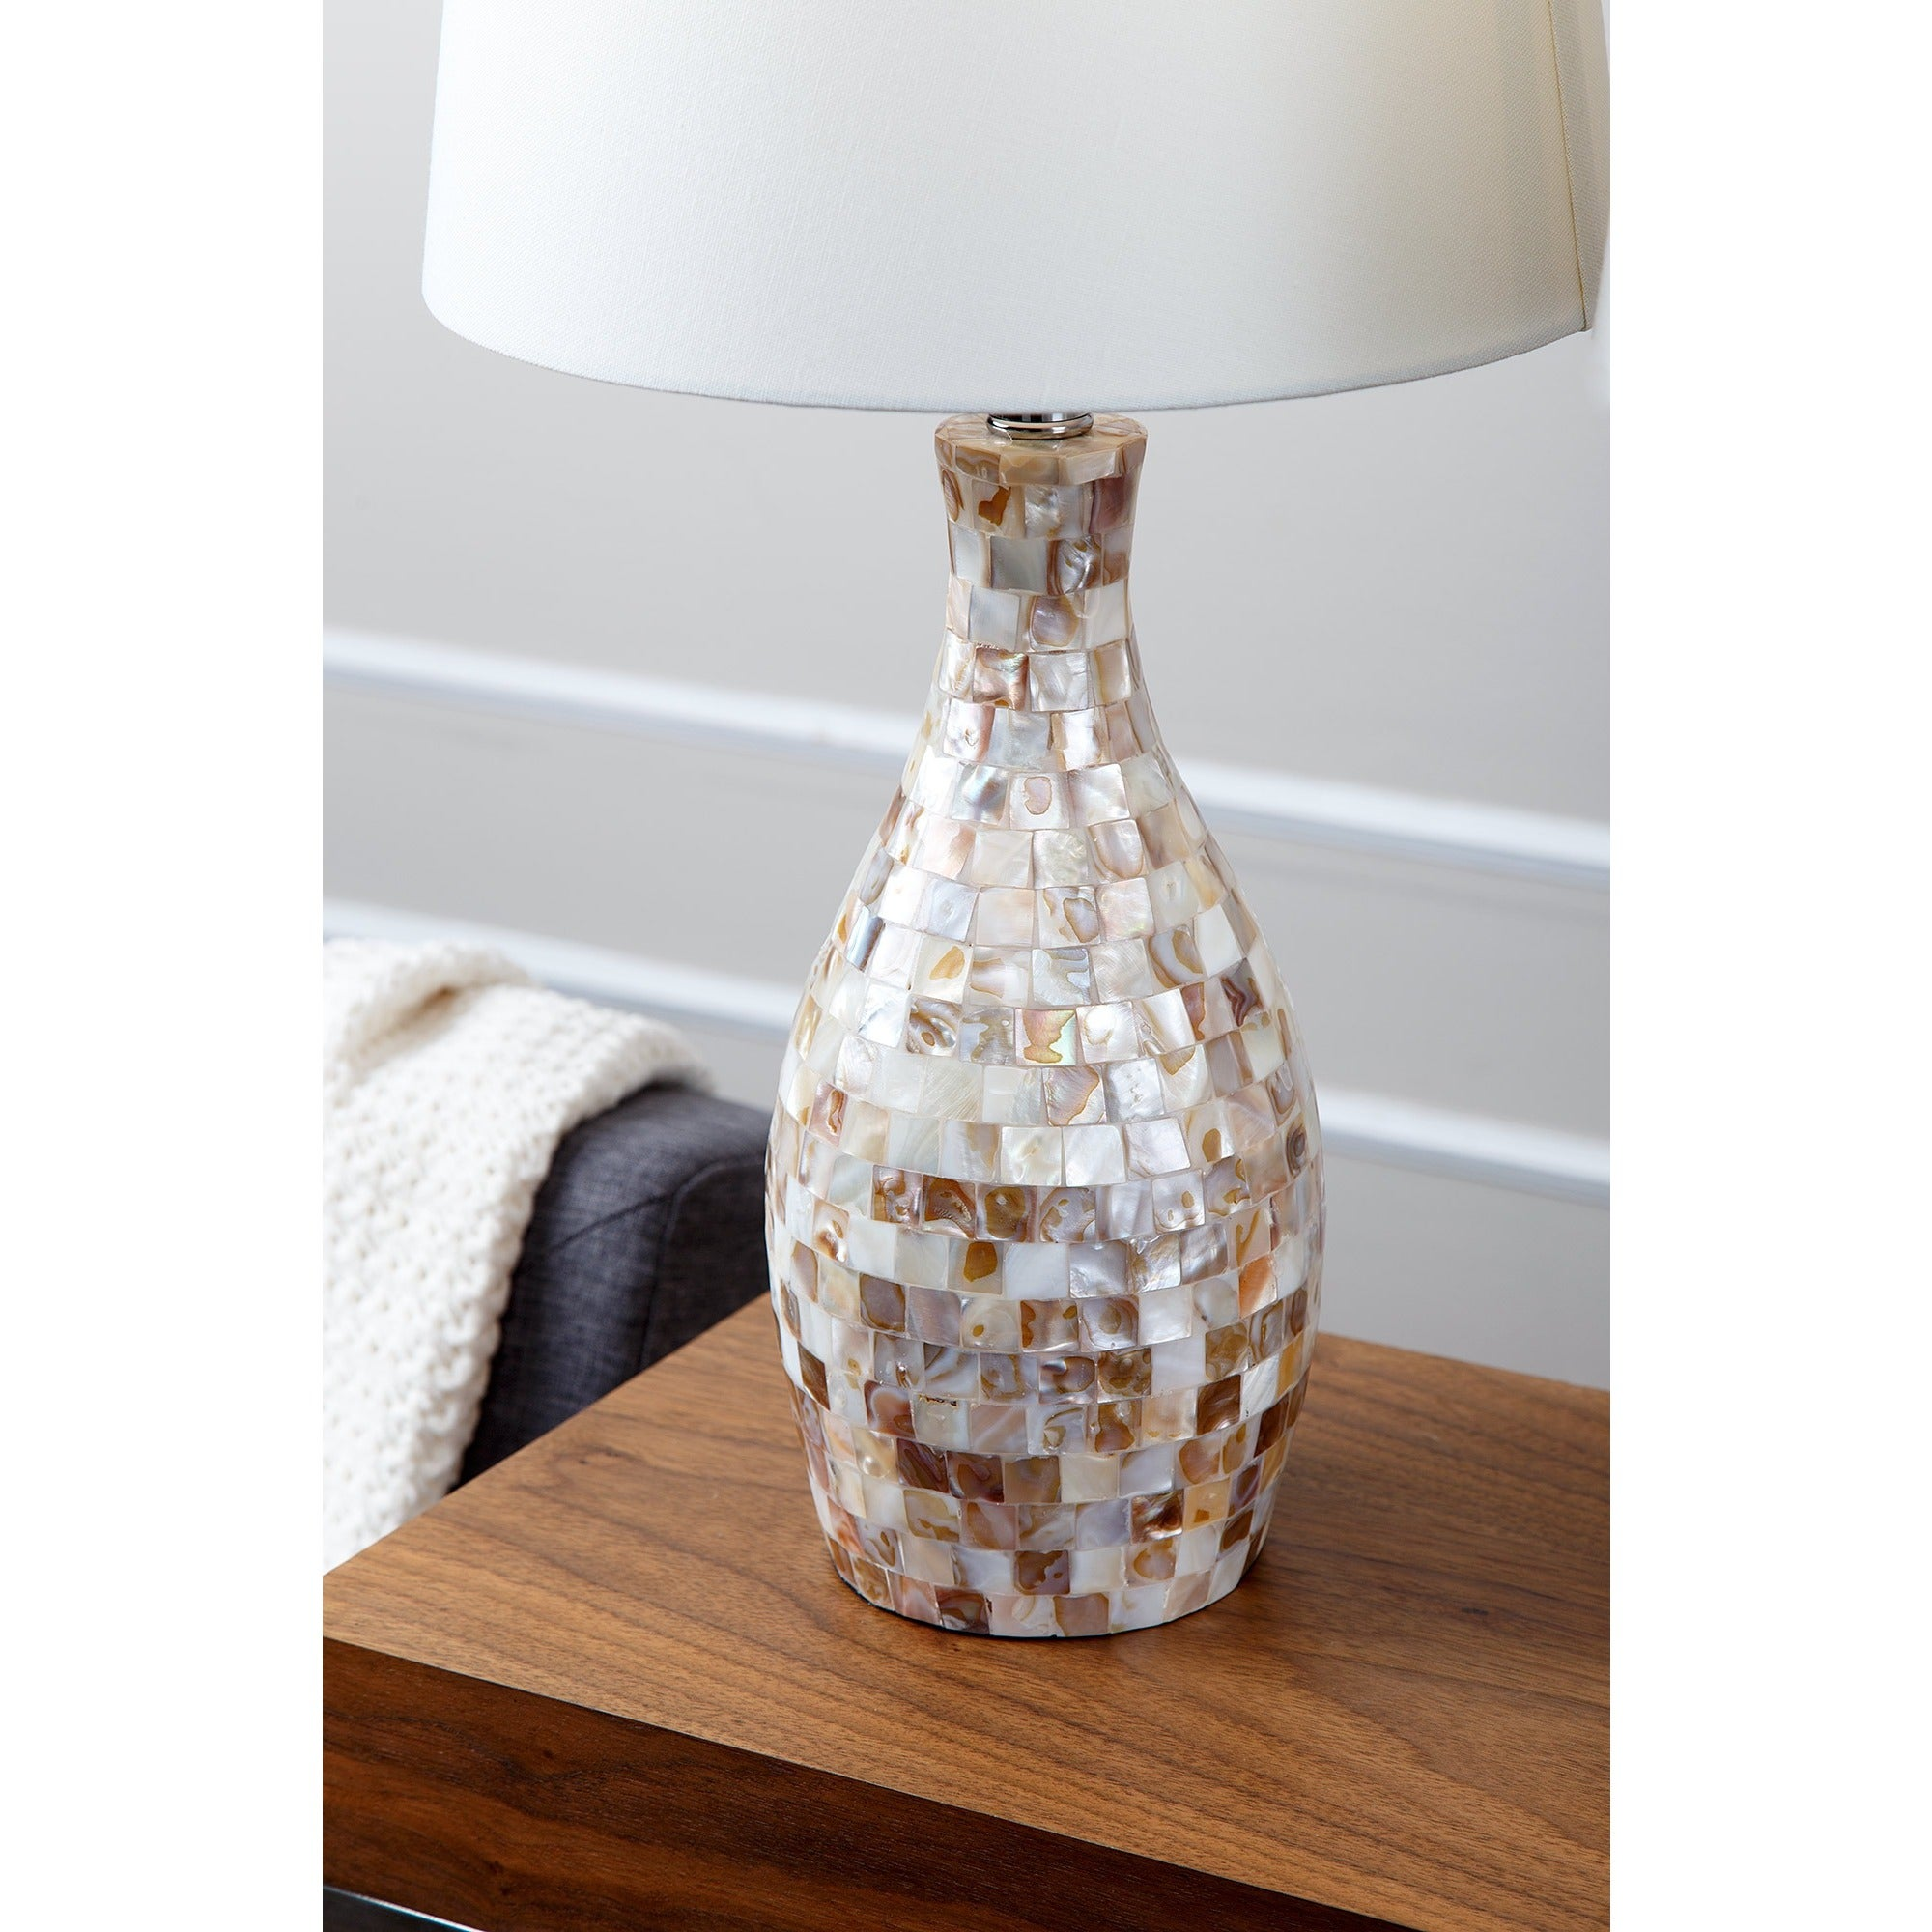 Abbyson mother of pearl table lamp set of 2 free shipping today abbyson mother of pearl table lamp set of 2 free shipping today overstock 16919253 aloadofball Images